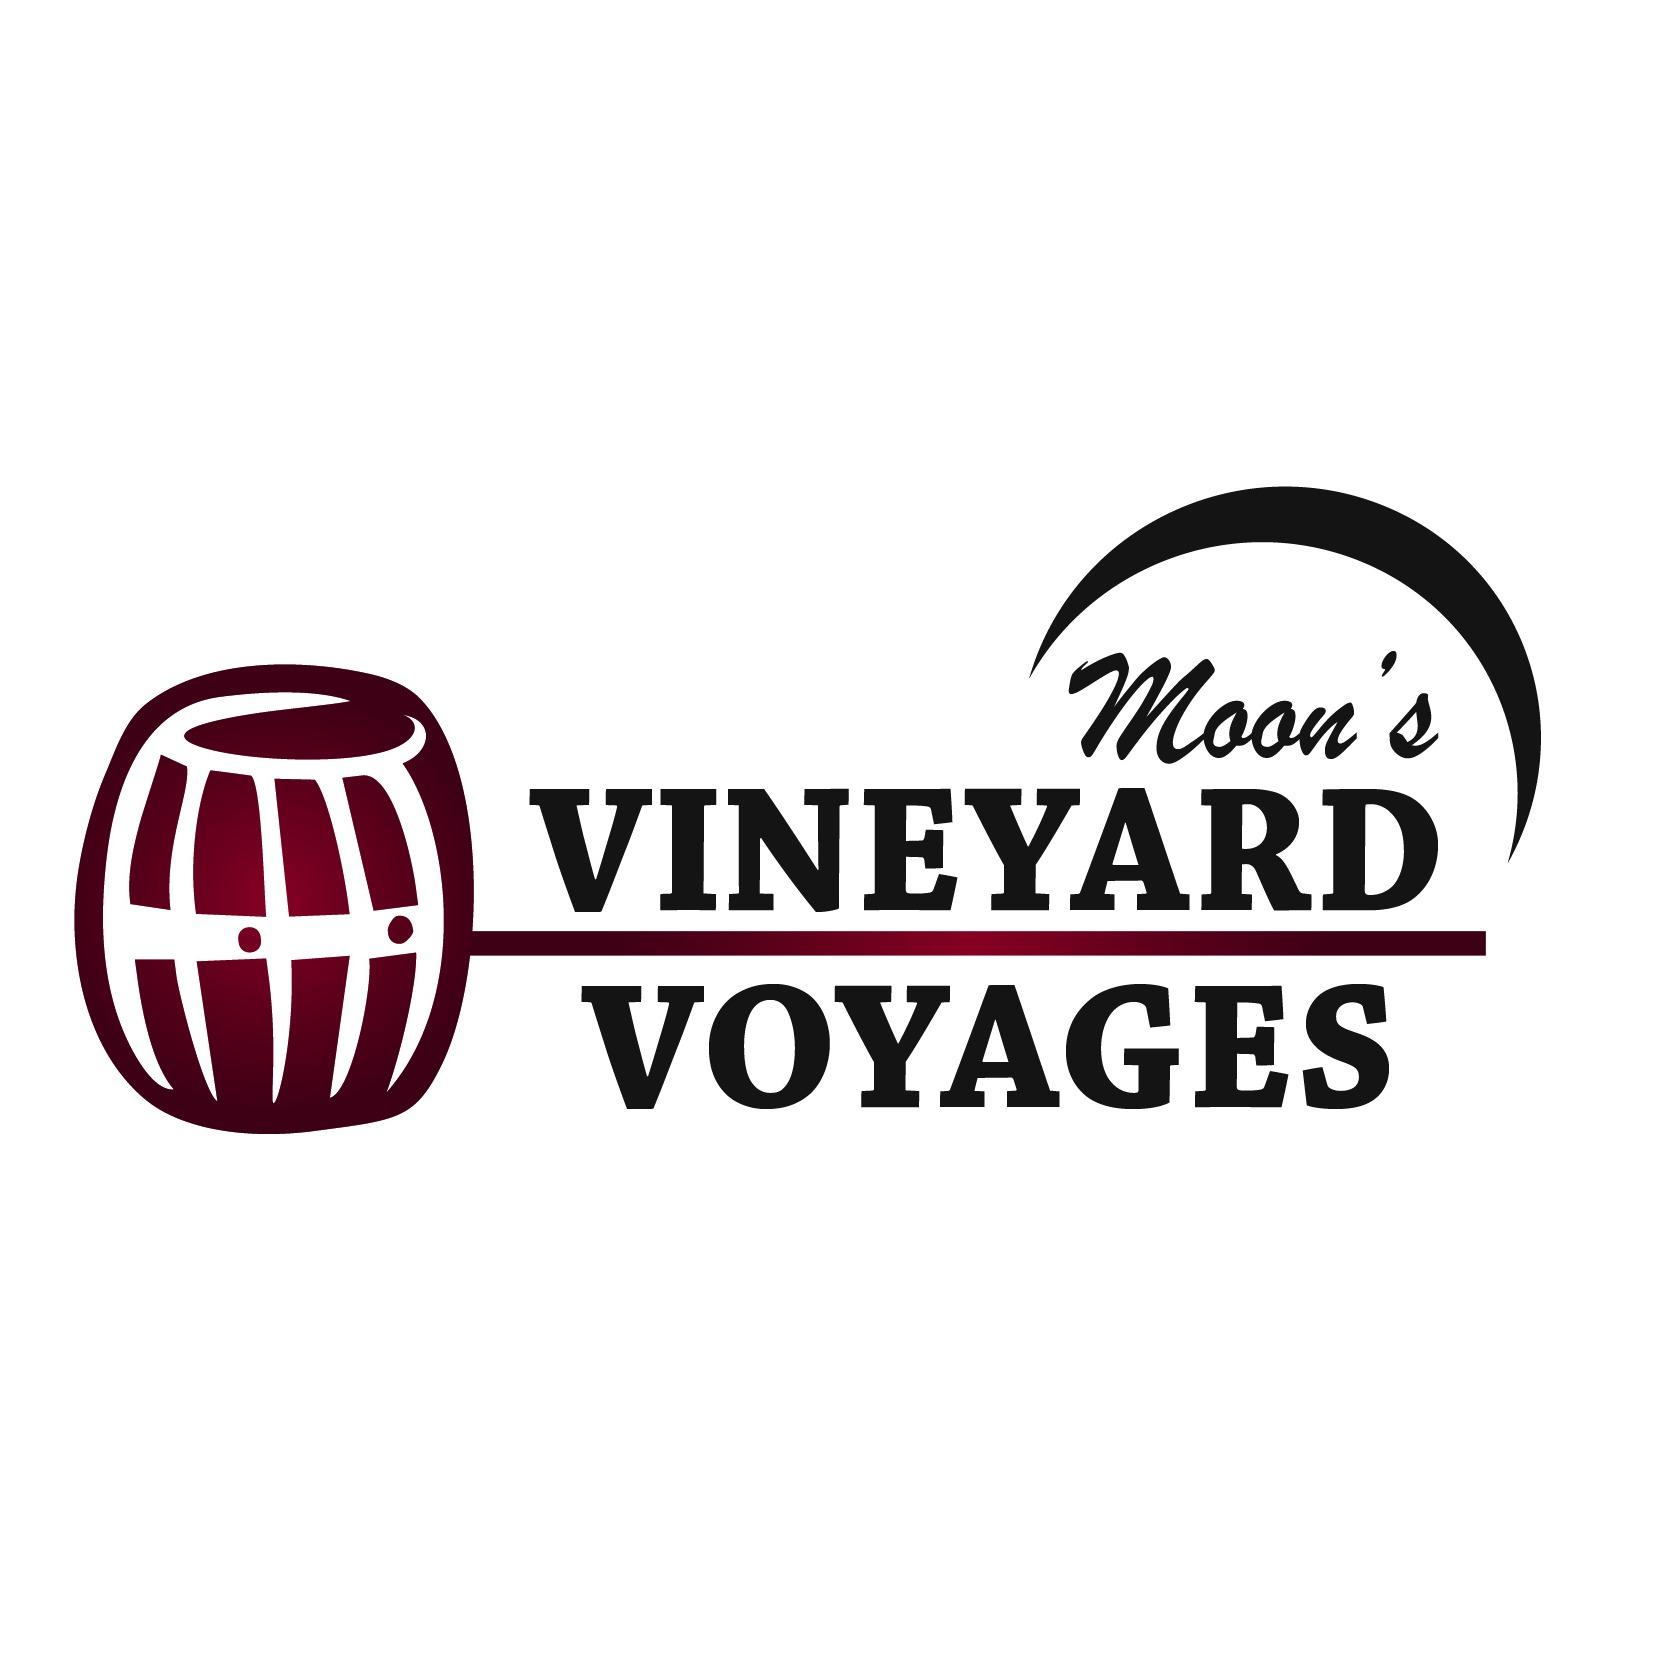 Moon's Vineyard Voyage